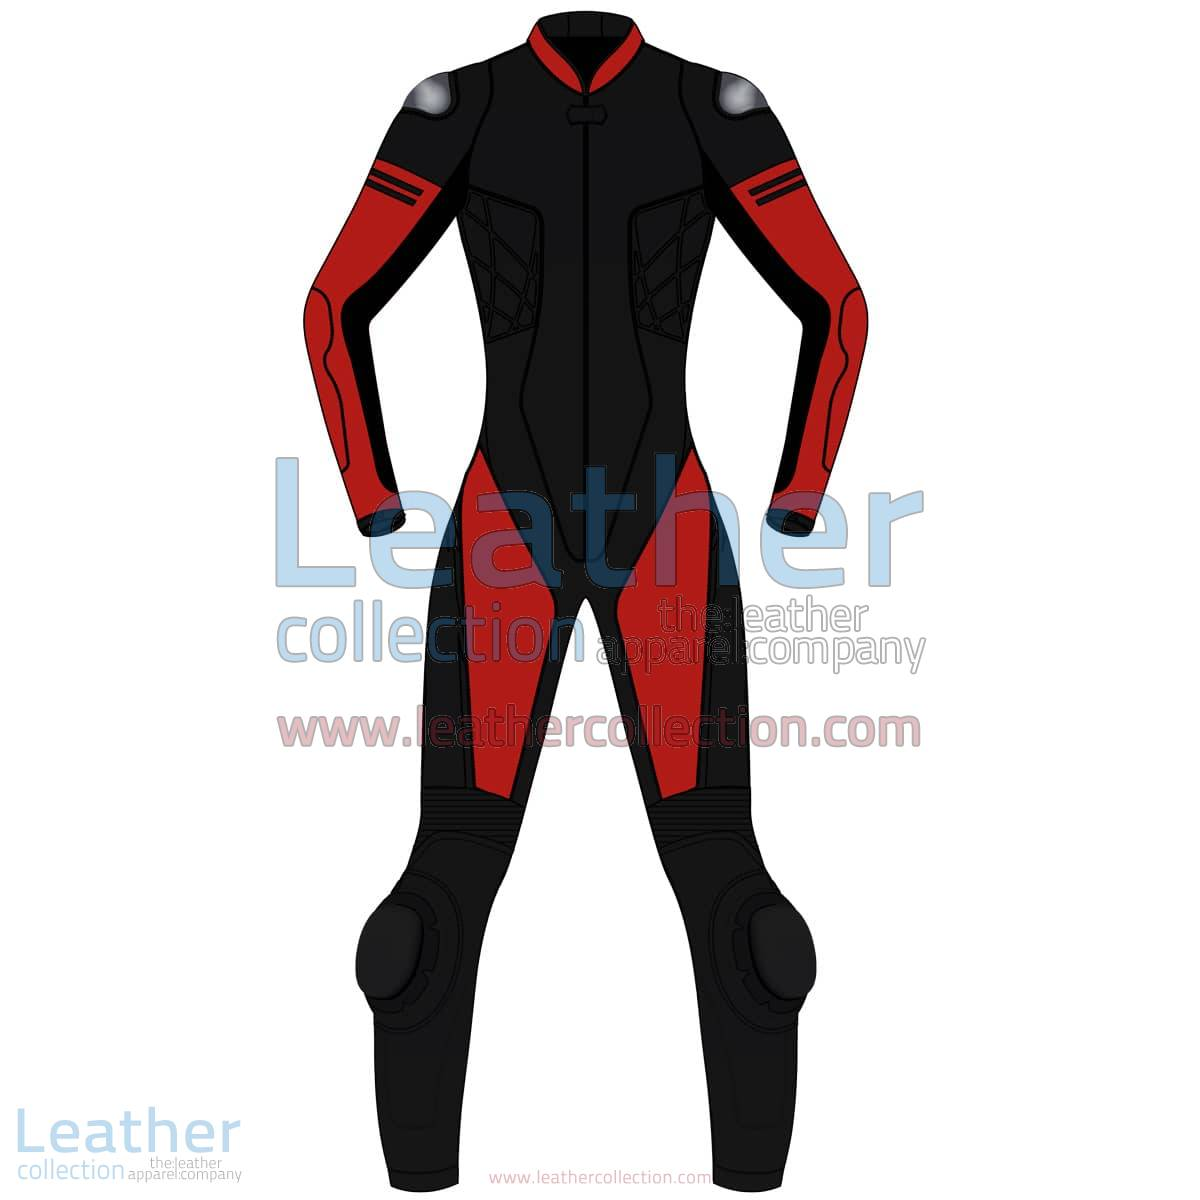 Bi Color One-Piece Motorbike Leather Suit For Women | Bi Color One-Piece motorcycle Leather Suit For Women